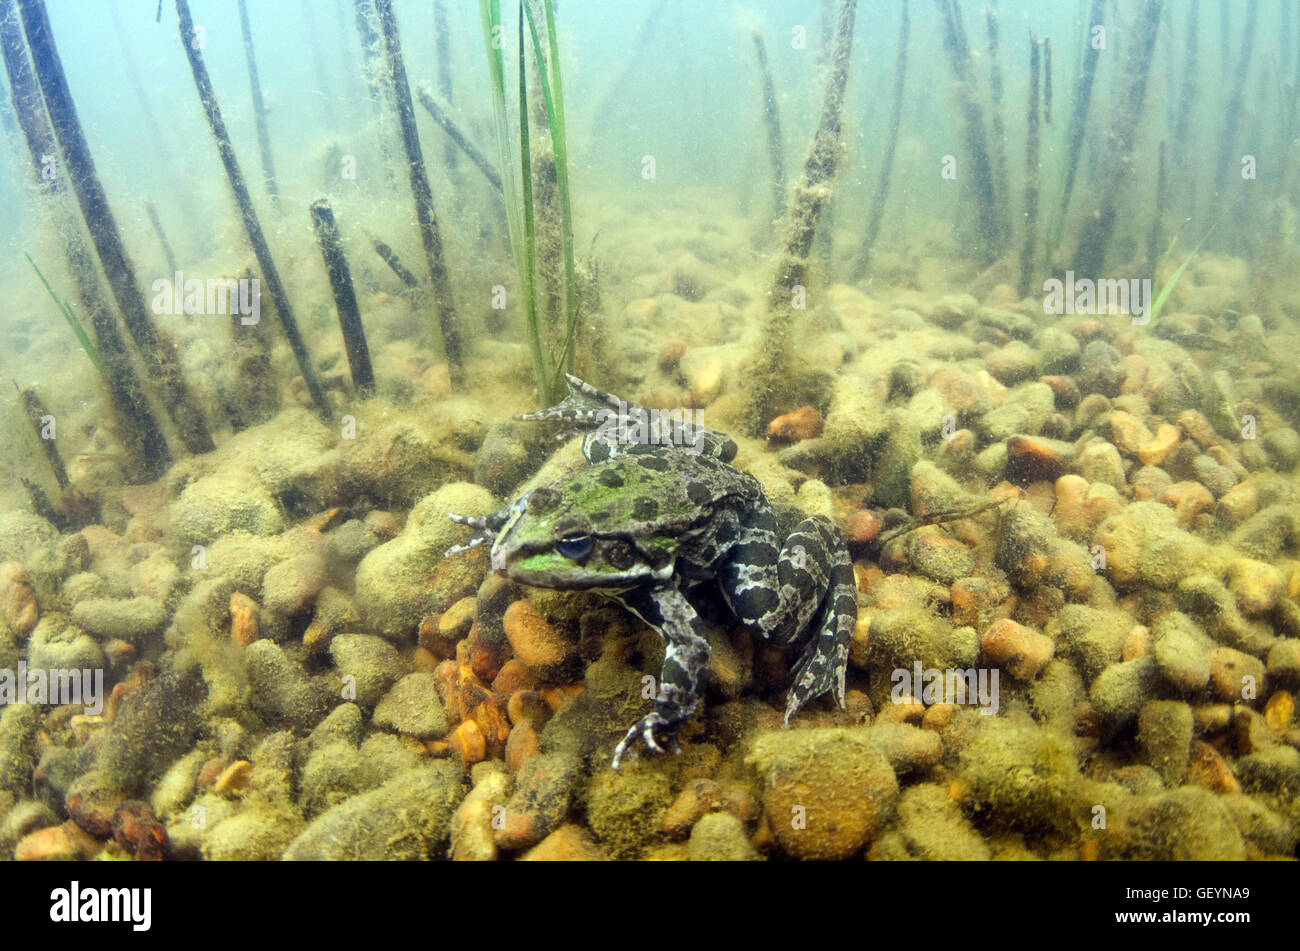 Marsh frog underwater - Stock Image